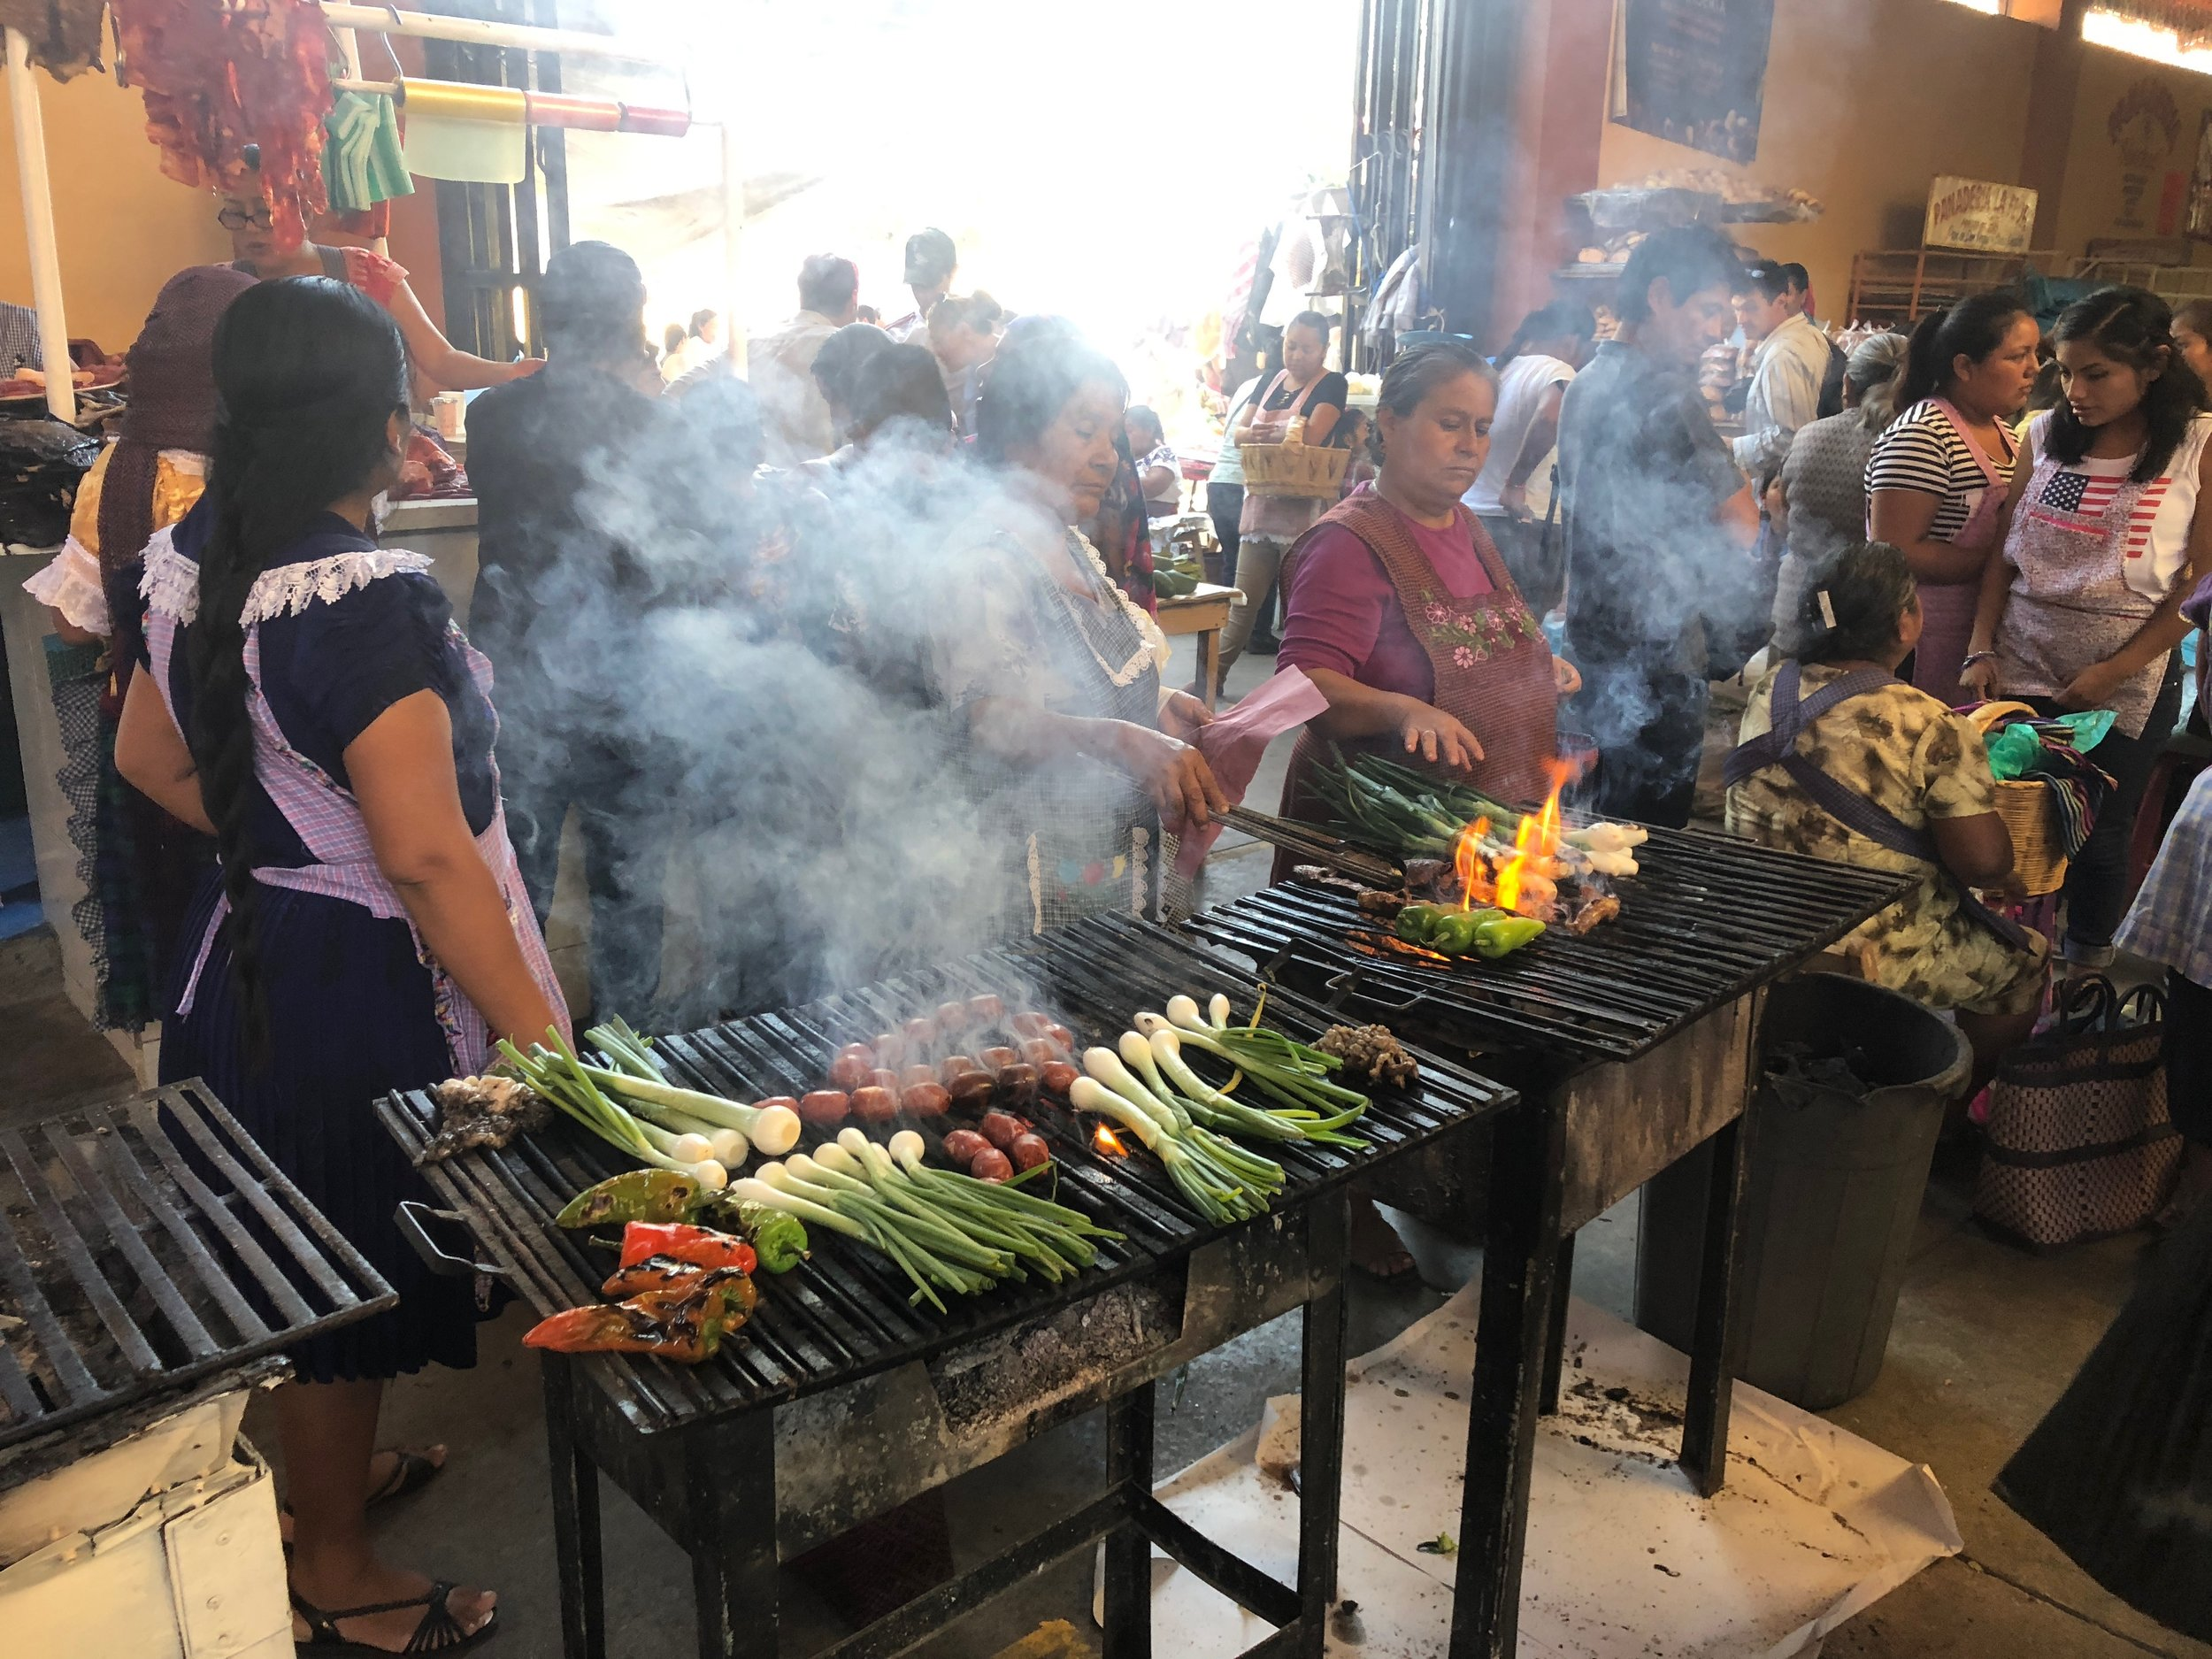 There is always so much good food to eat at the markets